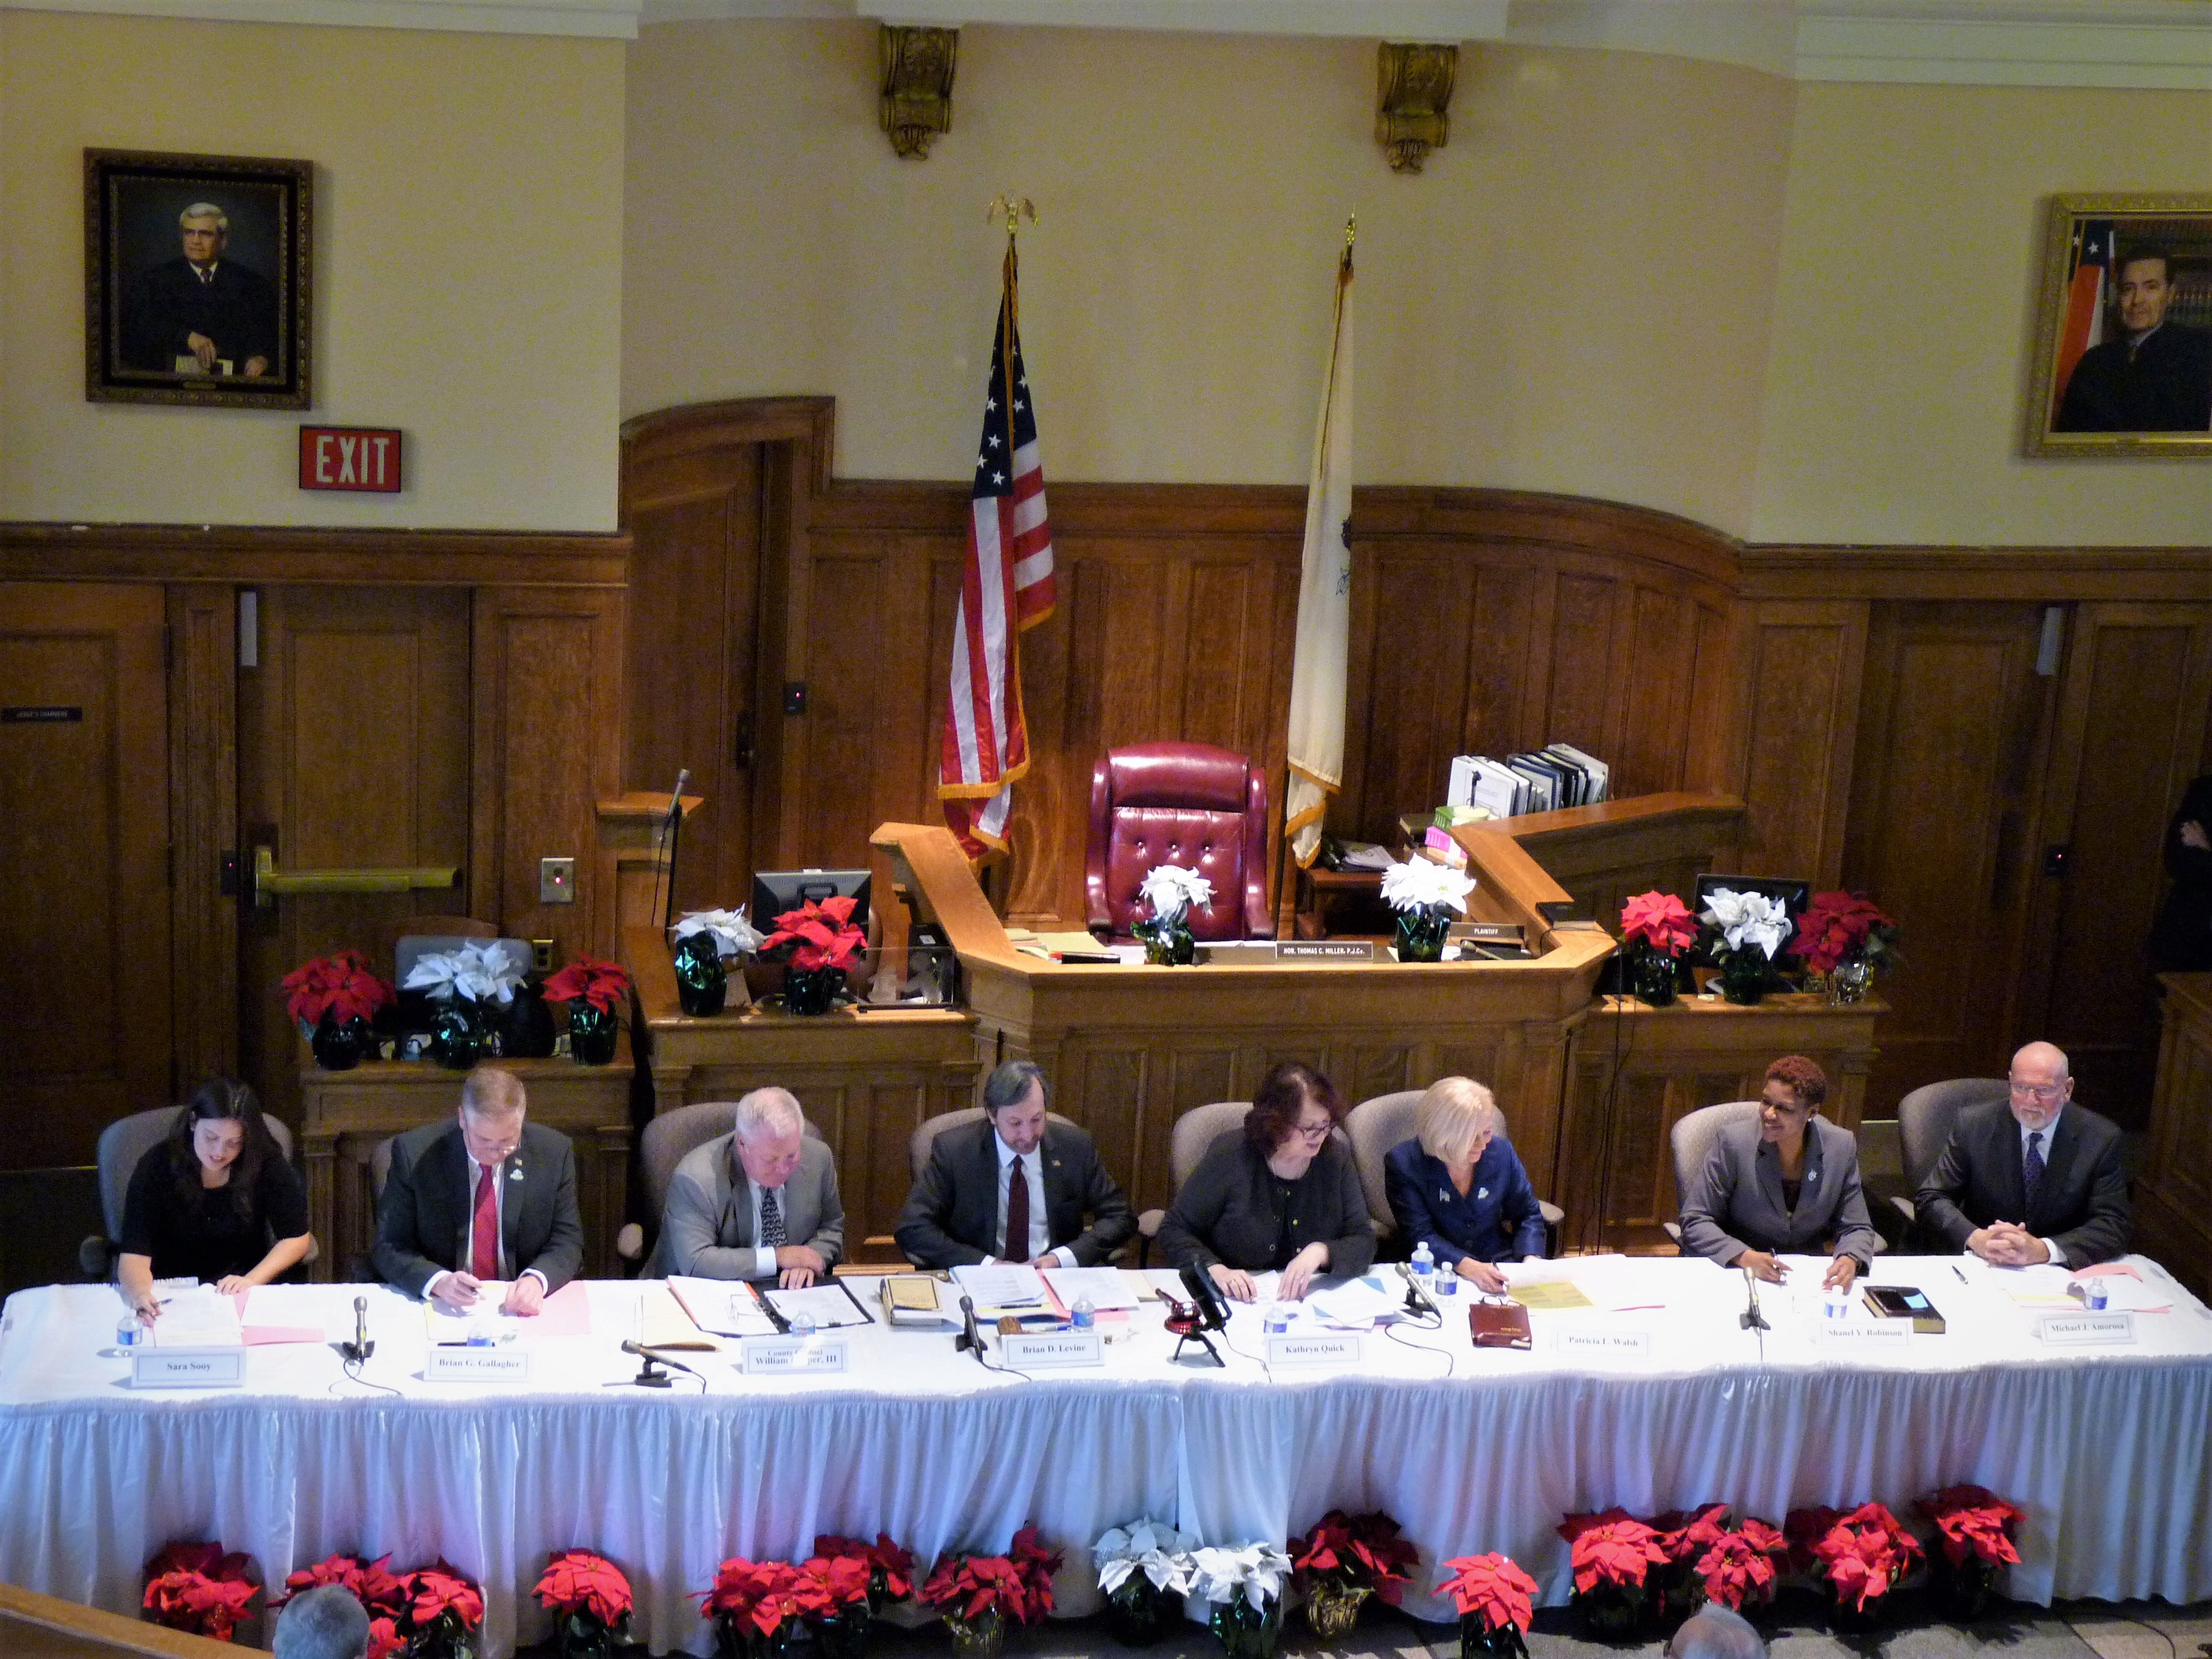 The Somerset County Board of Chosen Freeholders at its 2019 reorganization meeting in Somerville on Jan. 4, 2019.